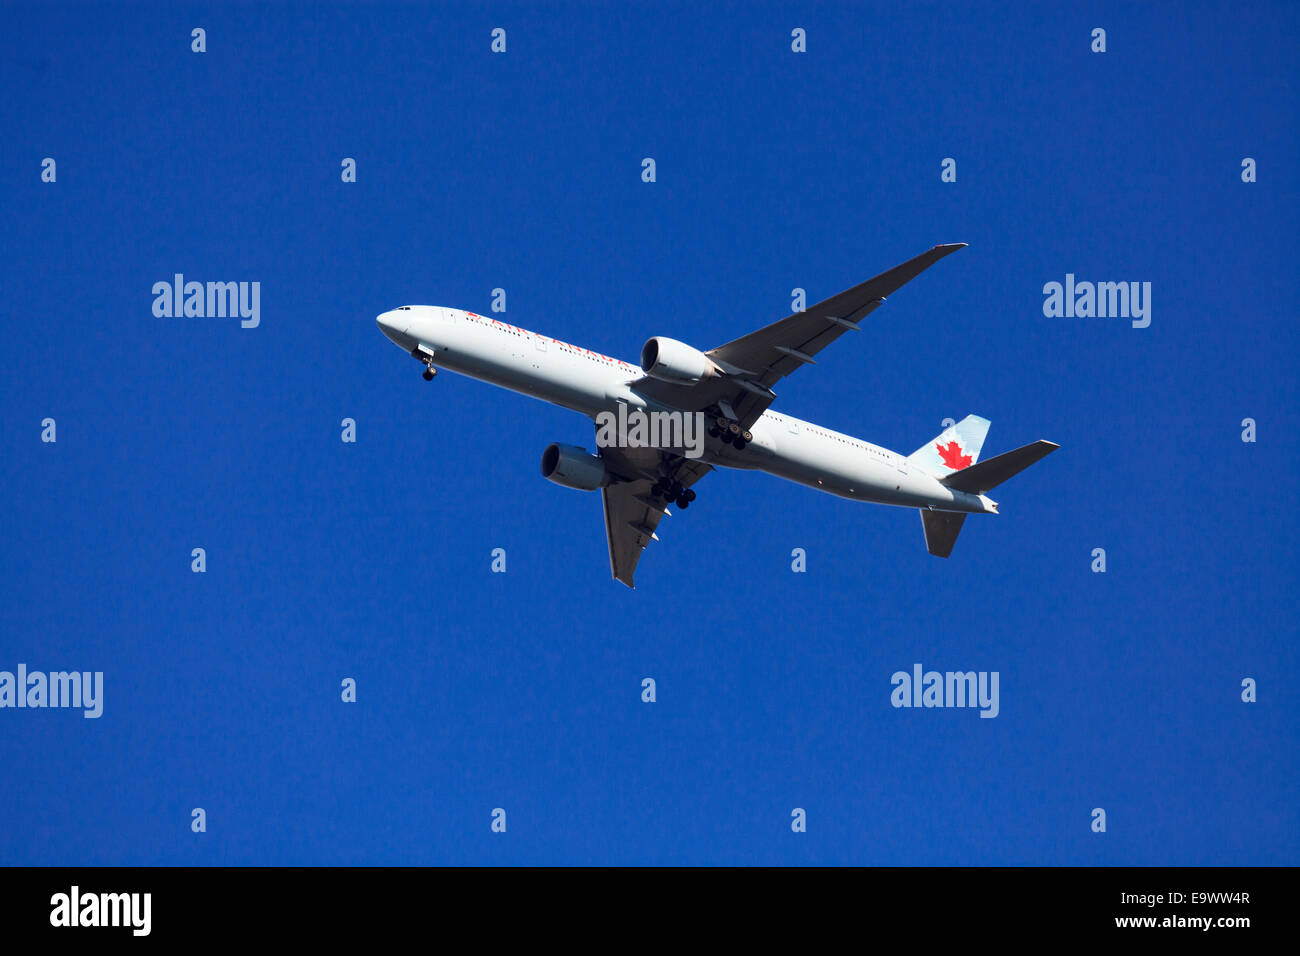 Air Canada Boeing 777-333(ER) from underneath against blue sky with undercarriage down - Stock Image